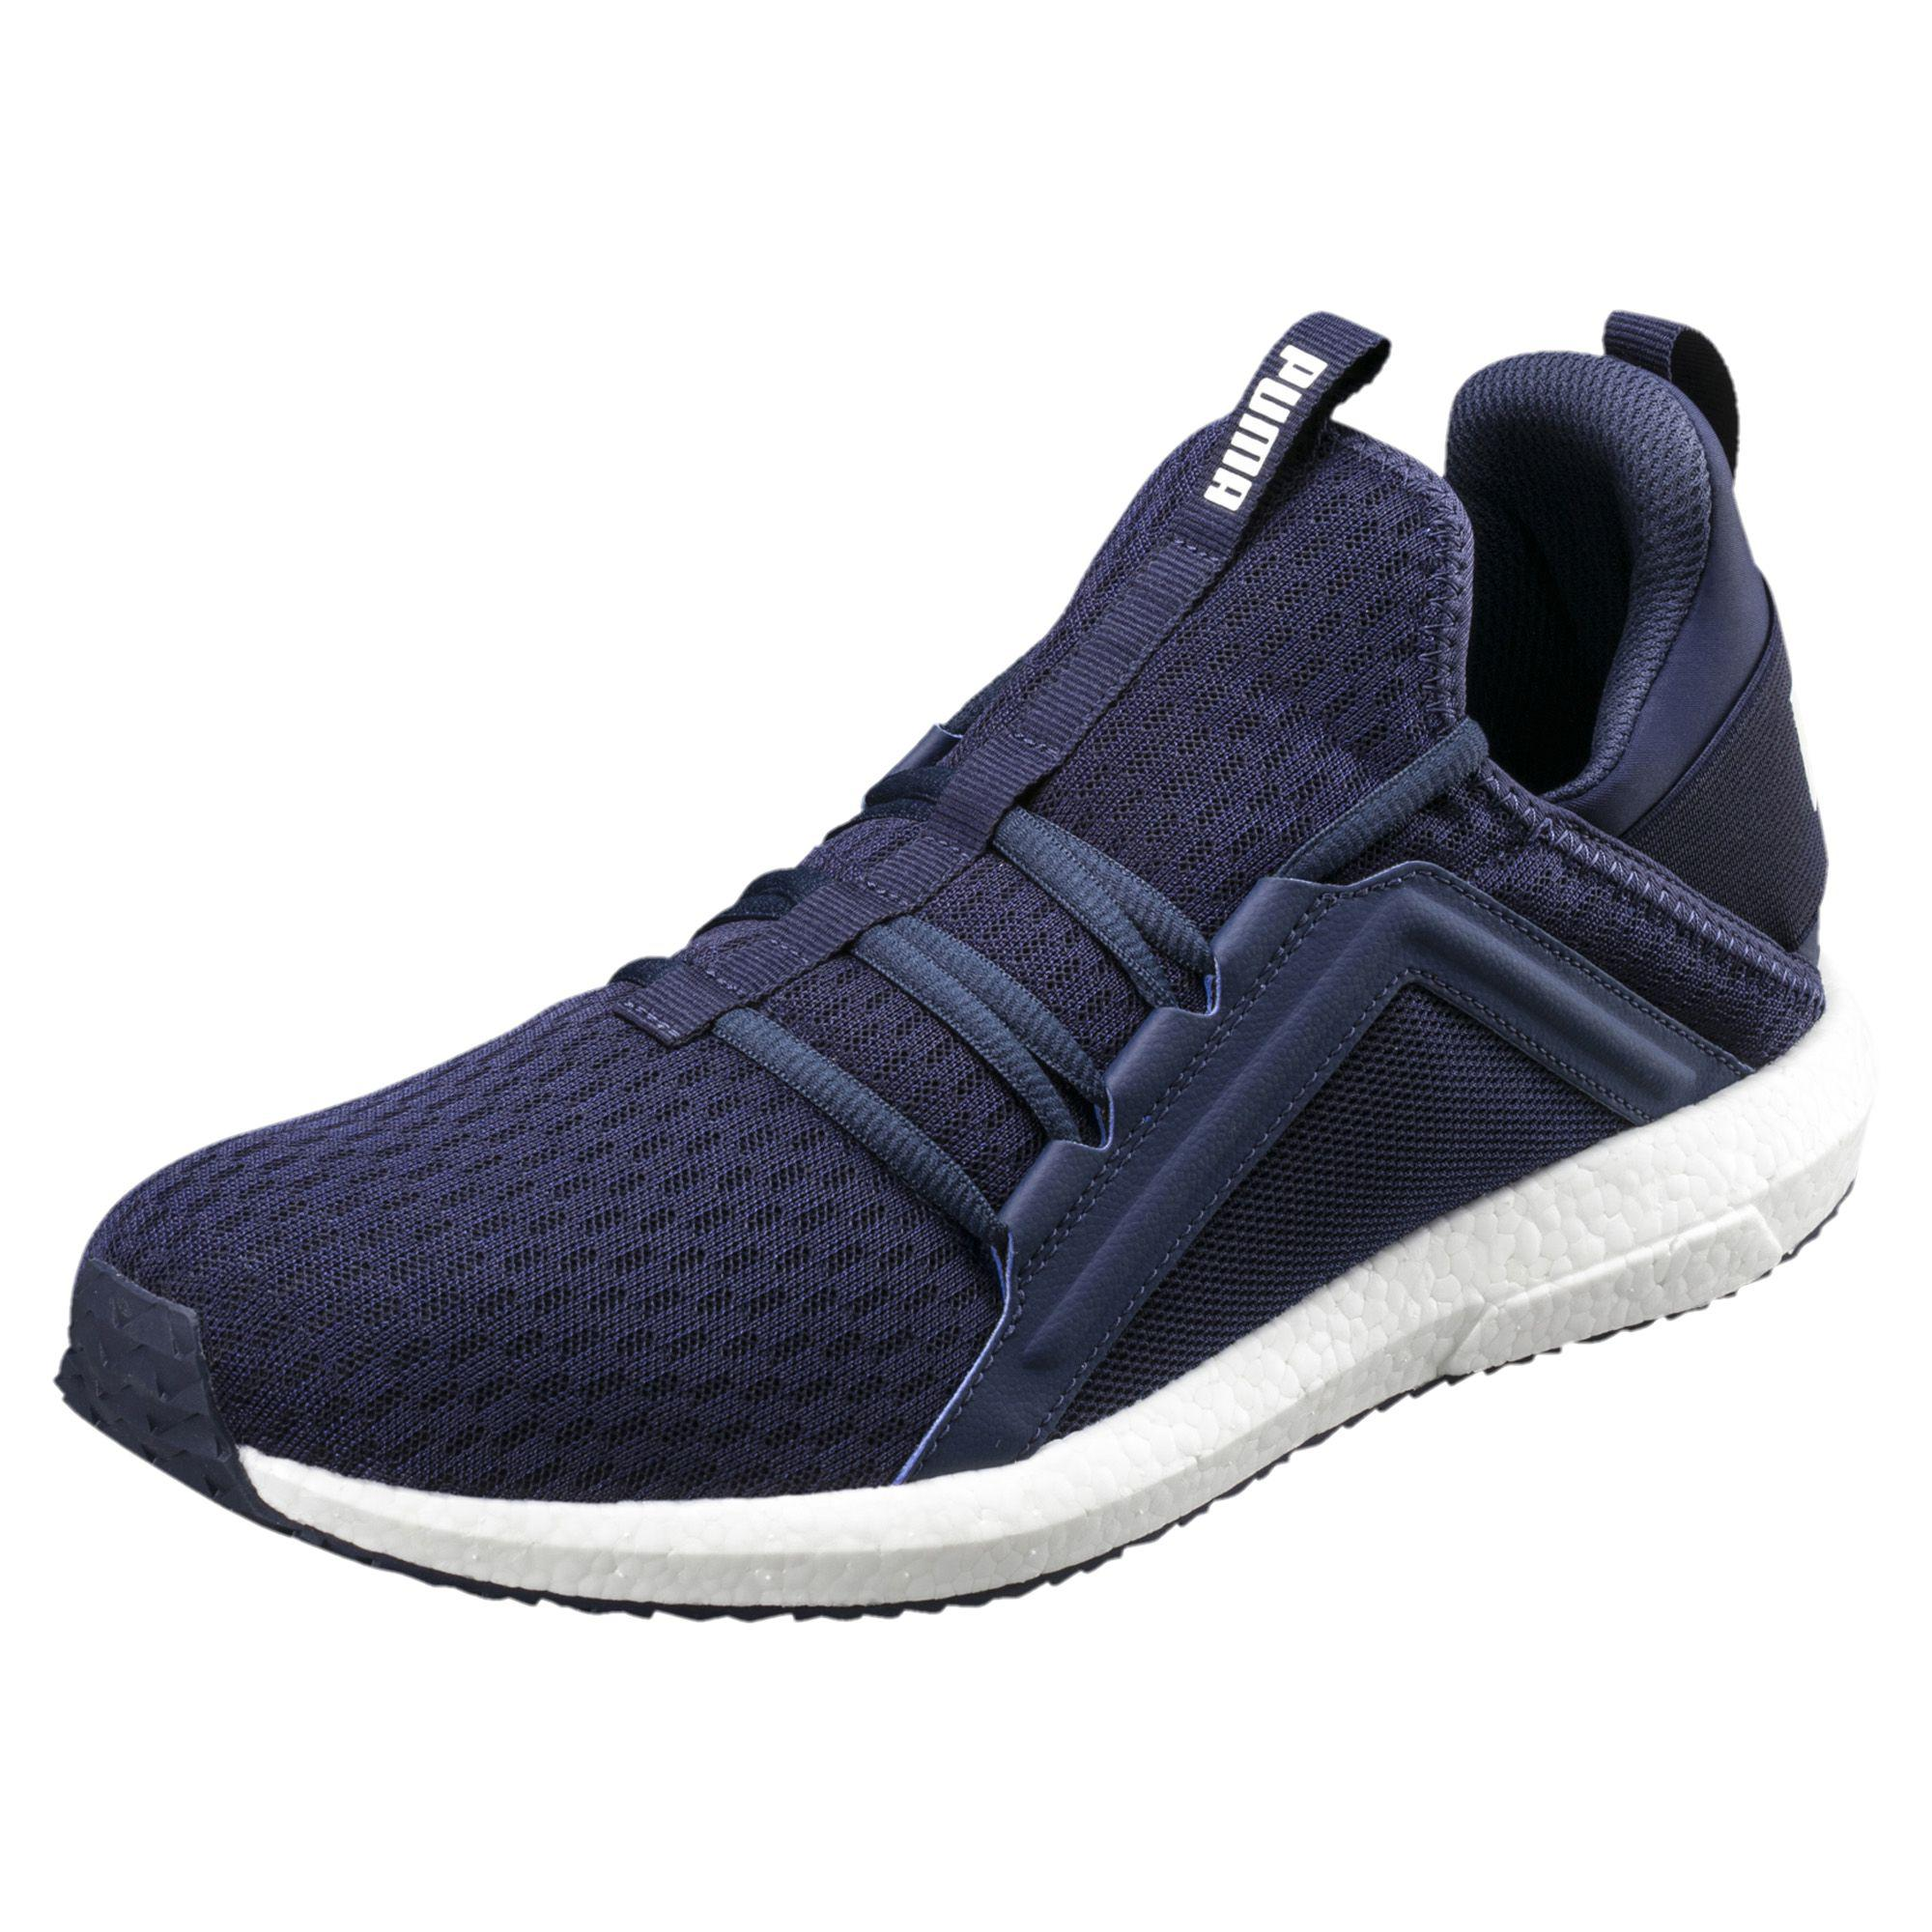 fda268a65e6be3 Lyst - Puma Mega Nrgy Men s Trainers in Blue for Men